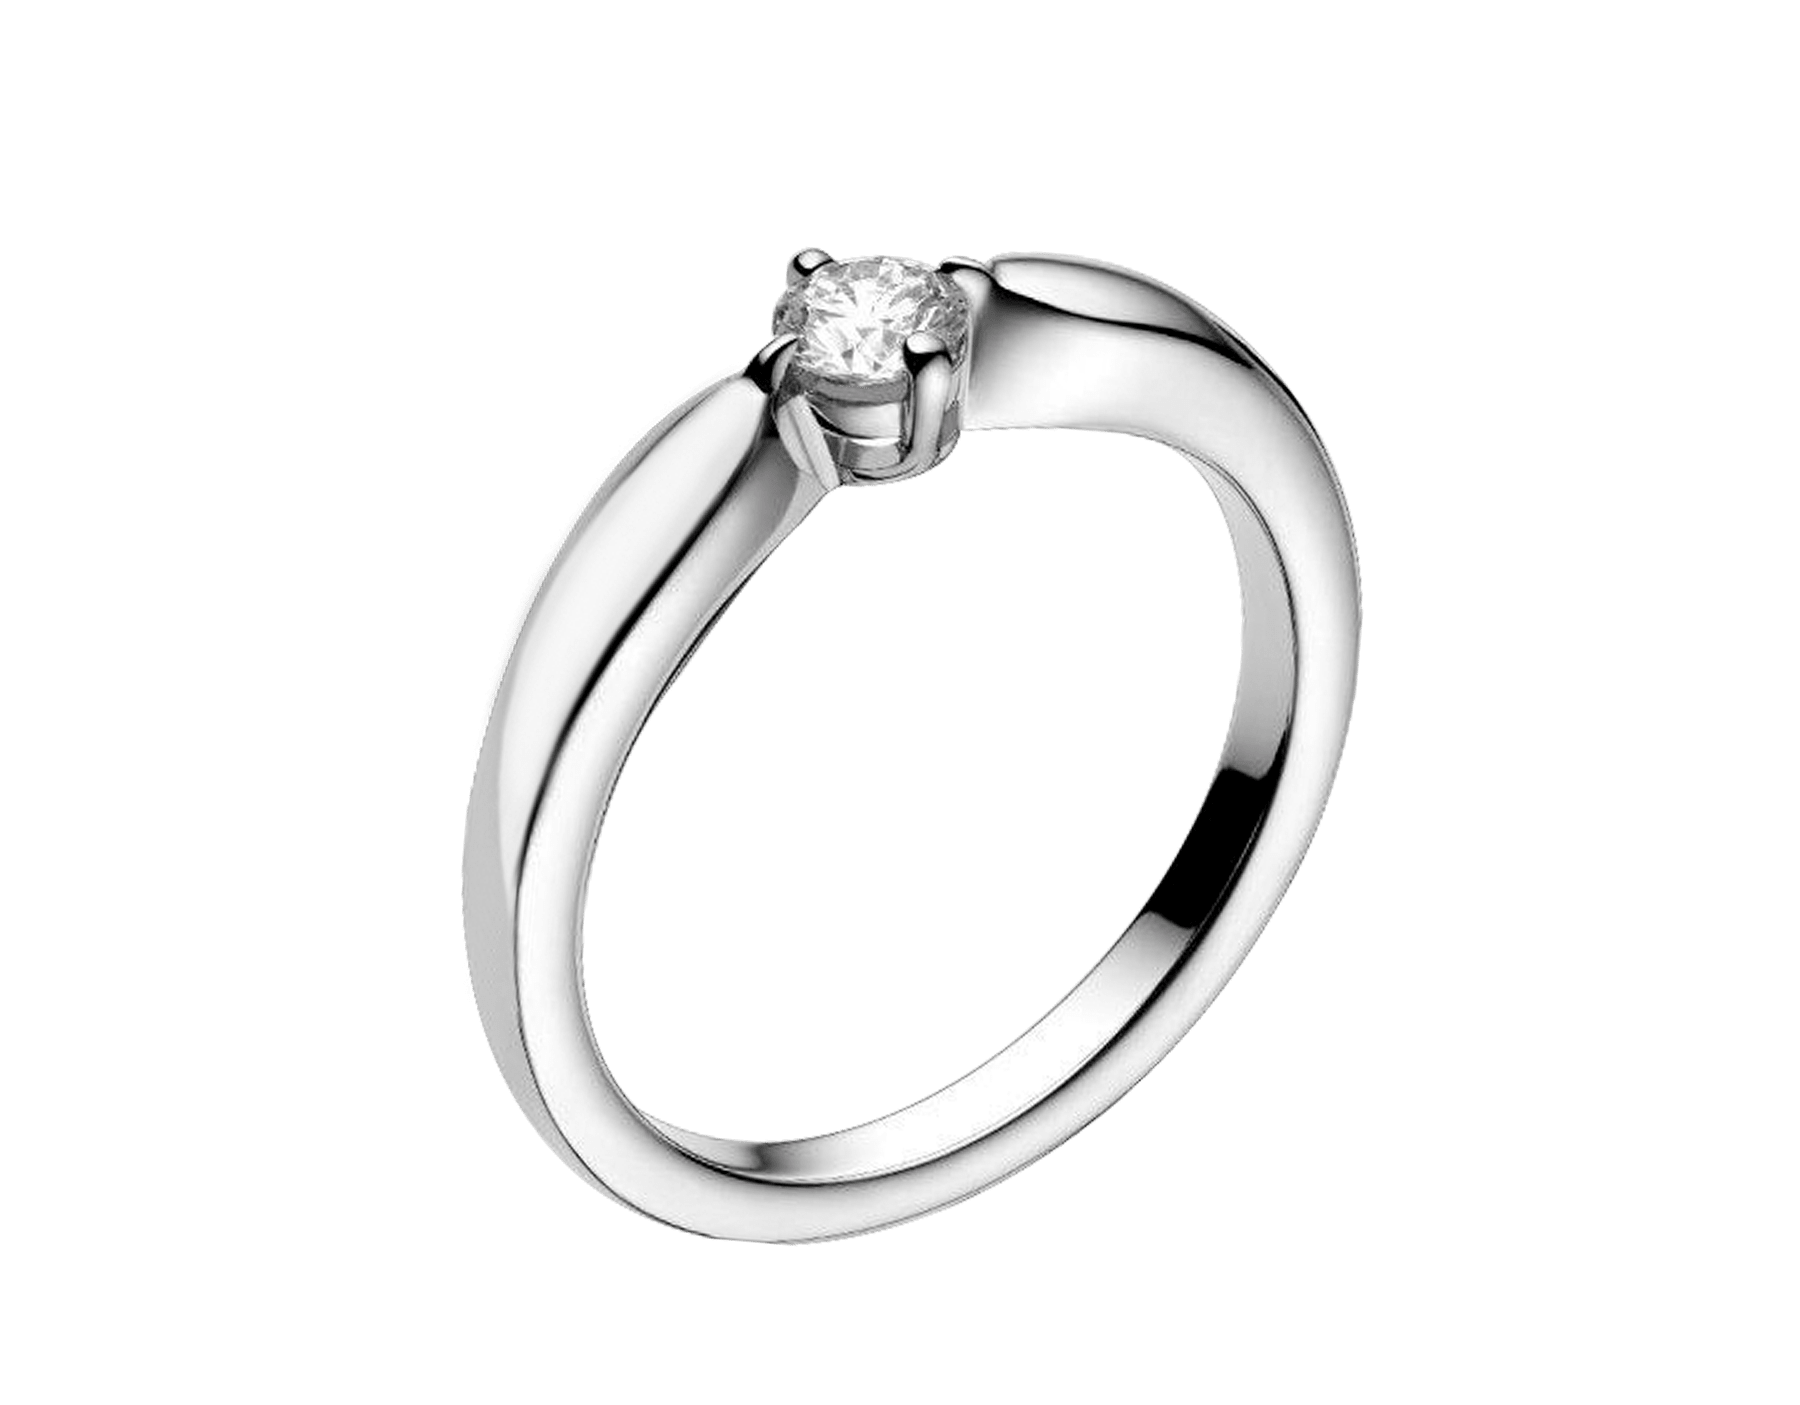 Dedicata a Venezia: Torcello solitaire ring in platinum with round brilliant-cut diamond. Available from 0.30 ct. Its curved setting perfectly embraces the diamond. The name comes from the Venetian island of Torcello. 345190 image 1